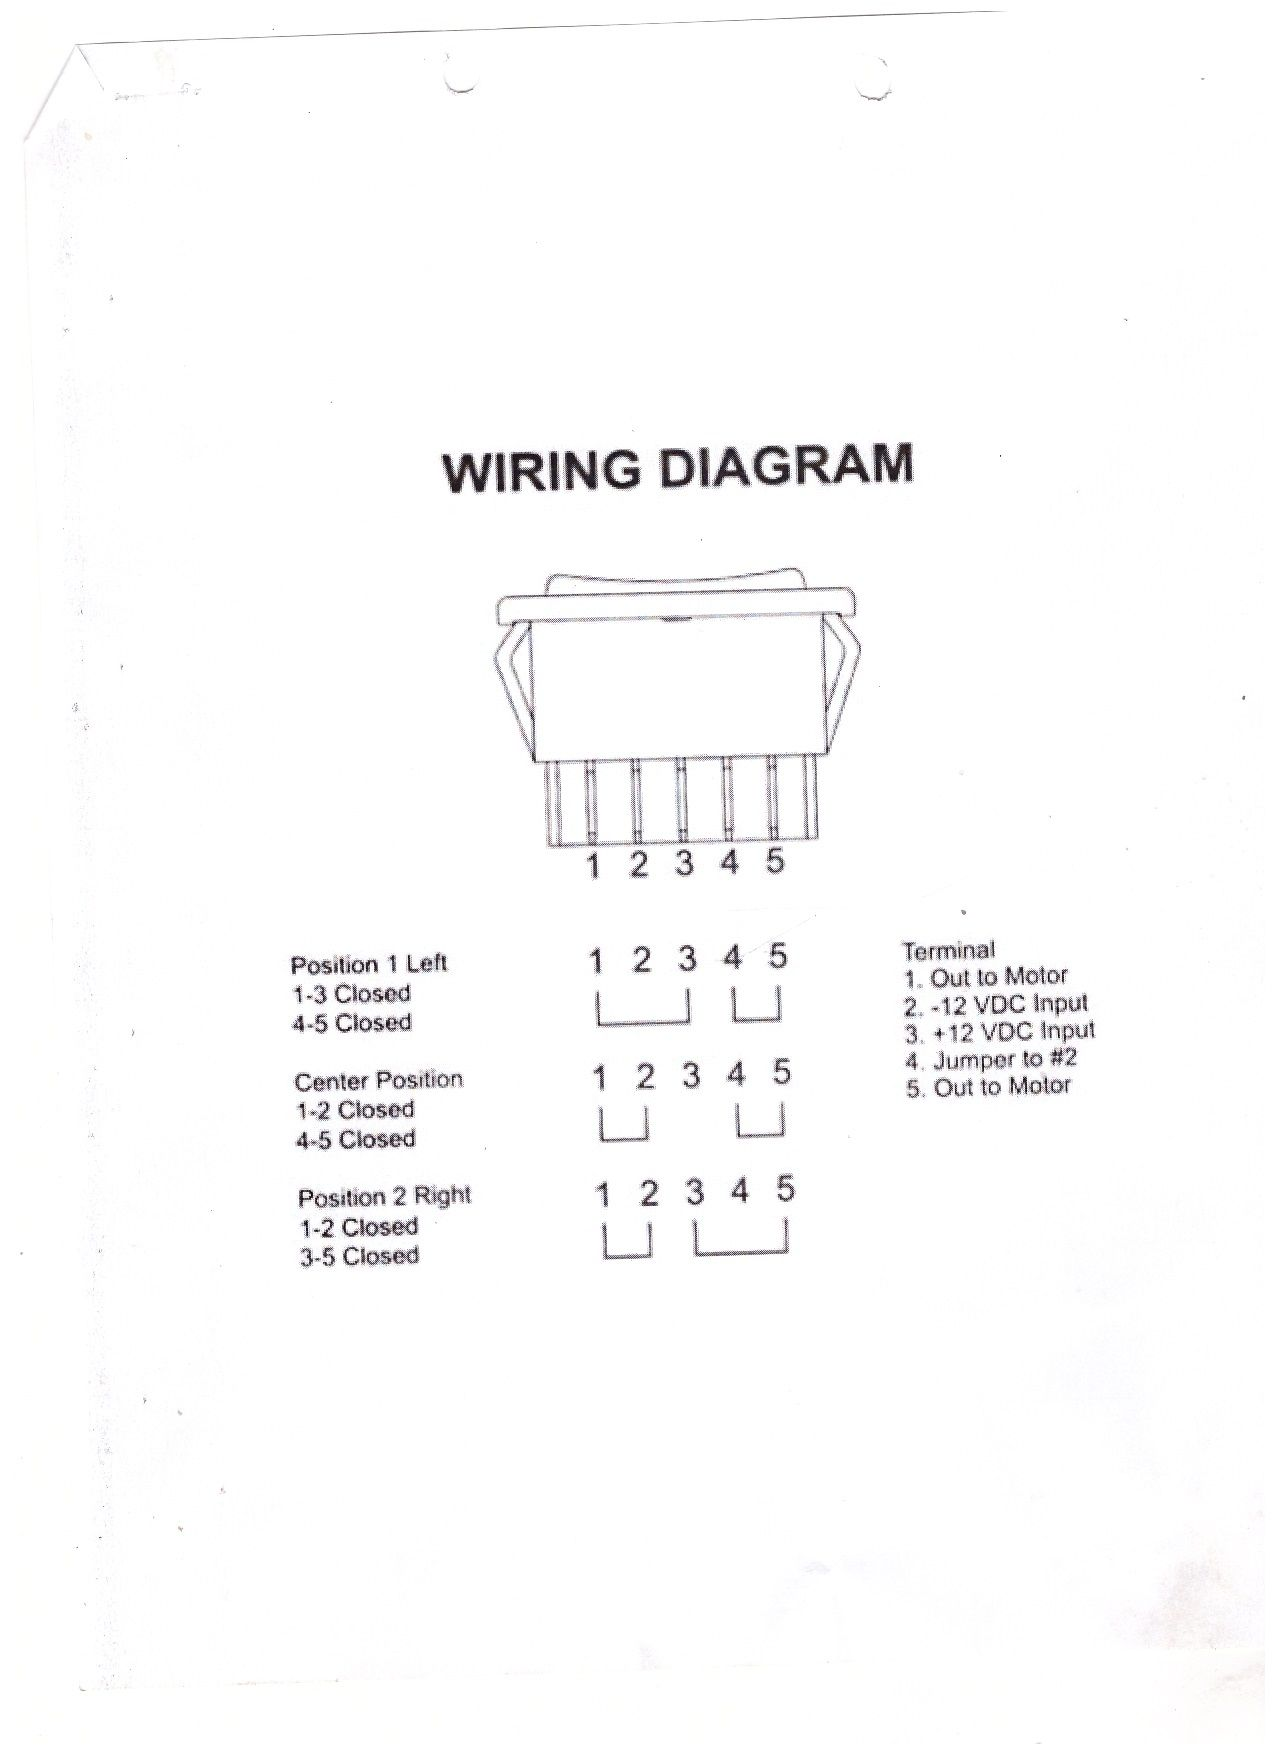 Best 12v Relay Wiring Diagram Pin Images At Switch 5 How To Wire A 2 Position